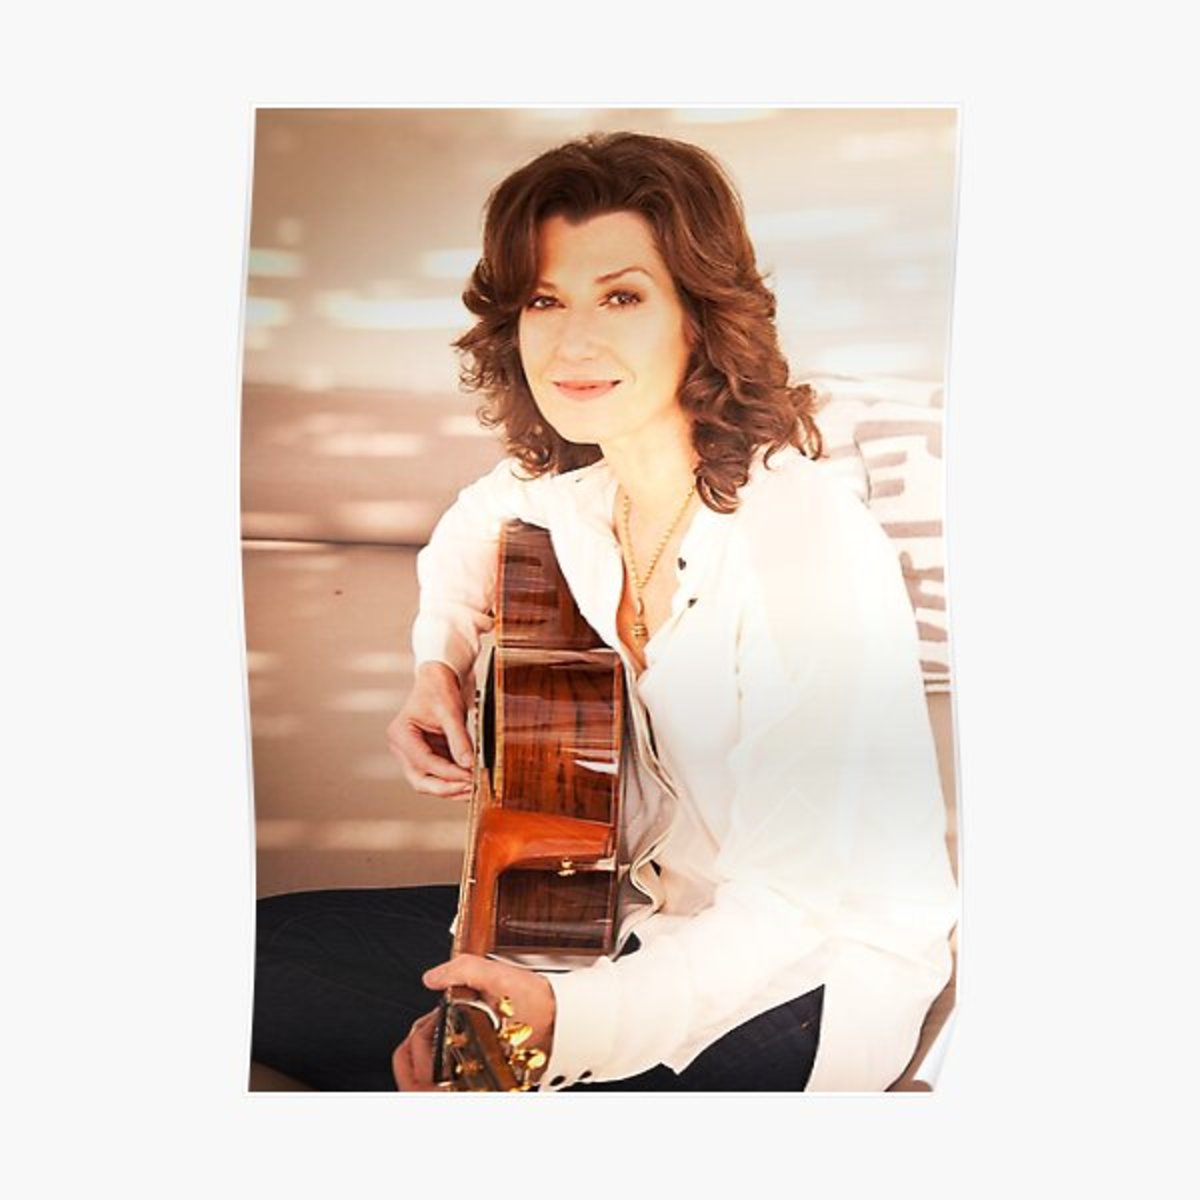 The very first time i heard Amy Grant's voice, I immediately fell in love with her ... Facts.